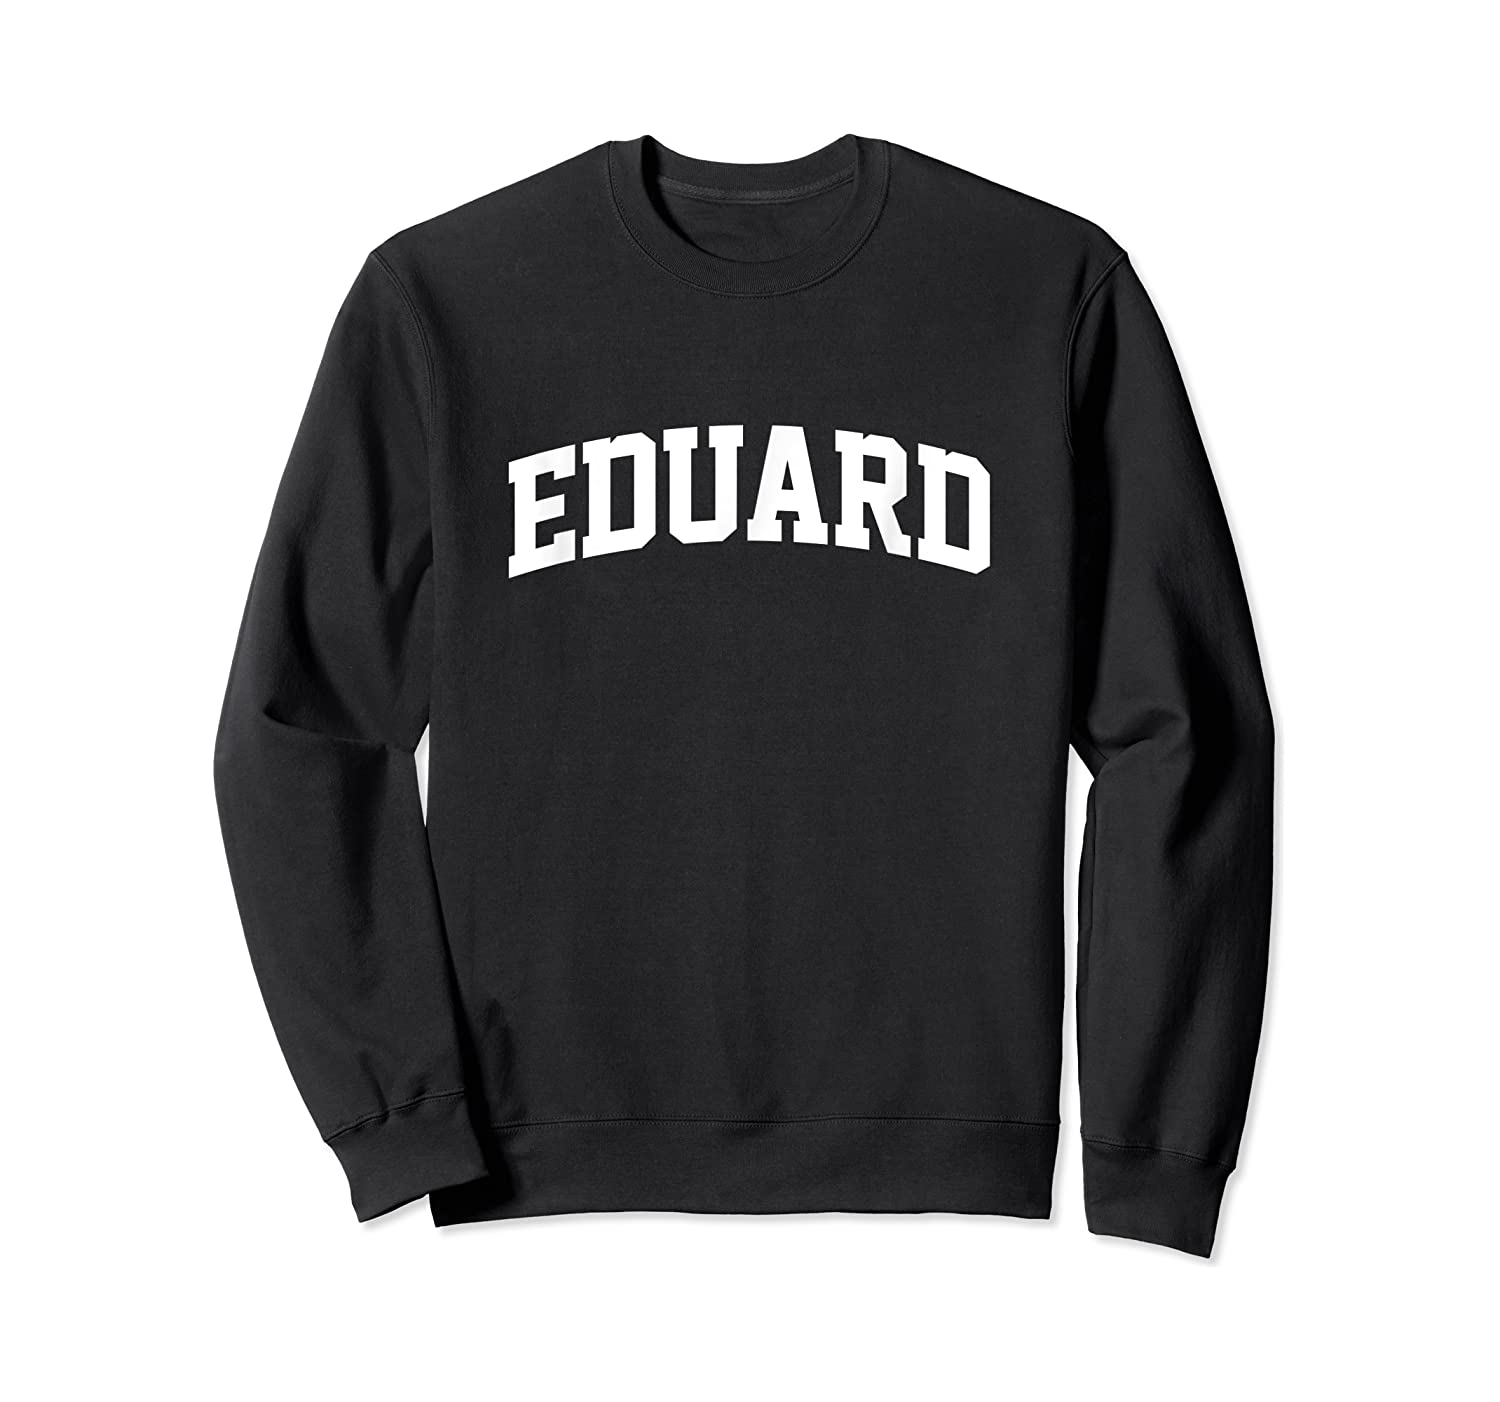 Eduard Name Last Family First College Arch Shirts Crewneck Sweater